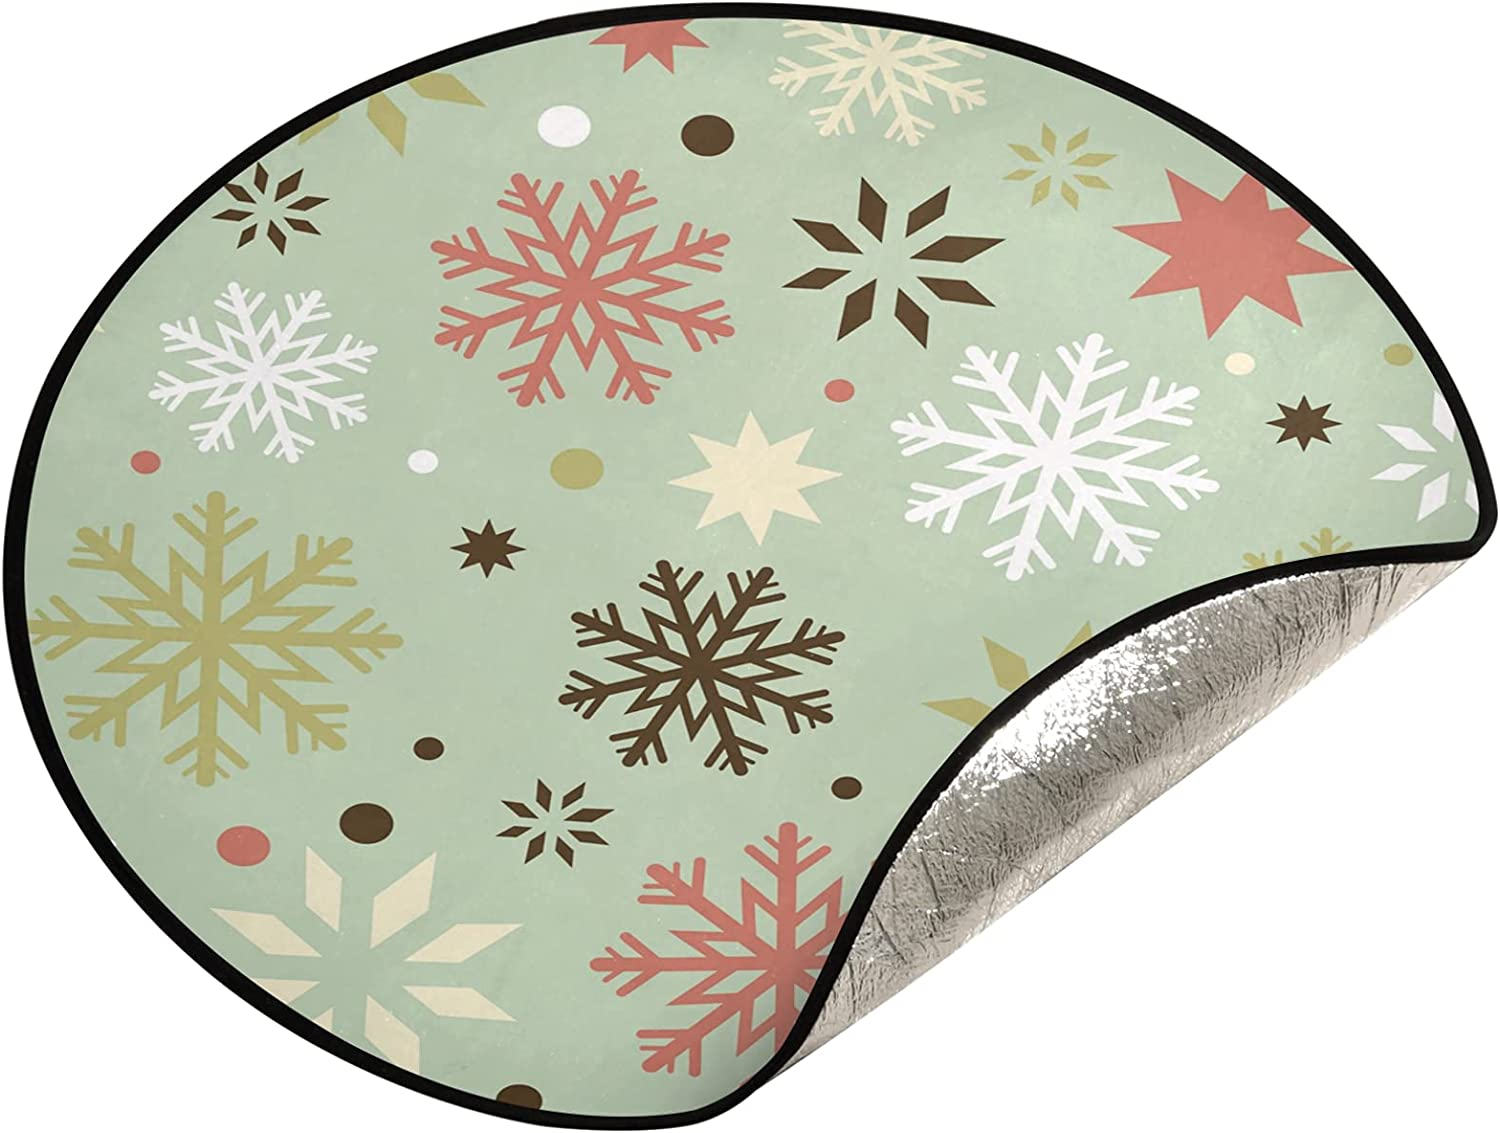 xigua 28.3 Inch New product!! Christmas Tree Stand Mat - National products Snowflakes